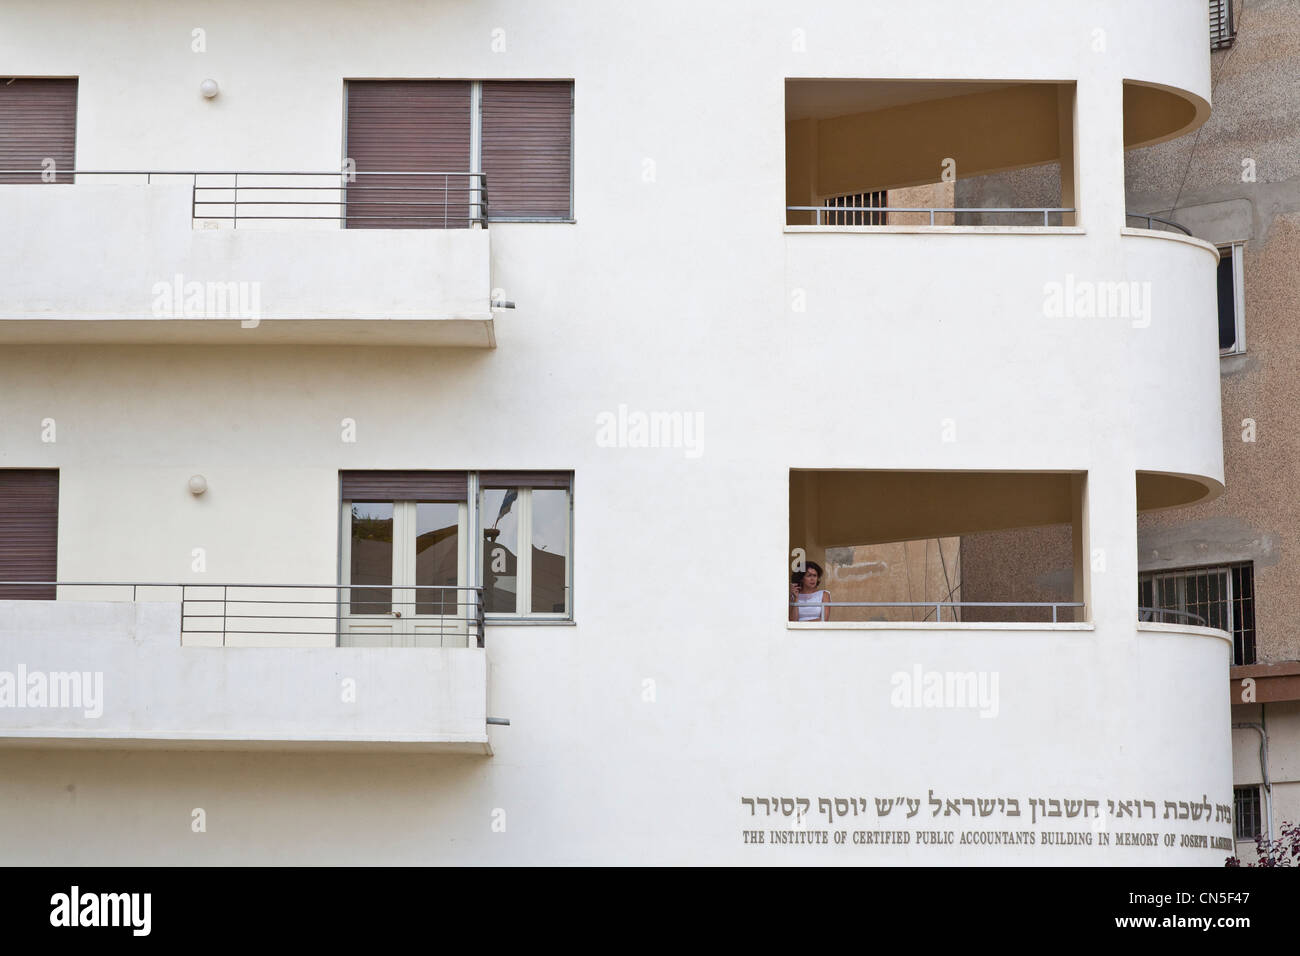 Israel, Tel Aviv, Institute of Certified Public Accountants, Bauhaus building - Stock Image